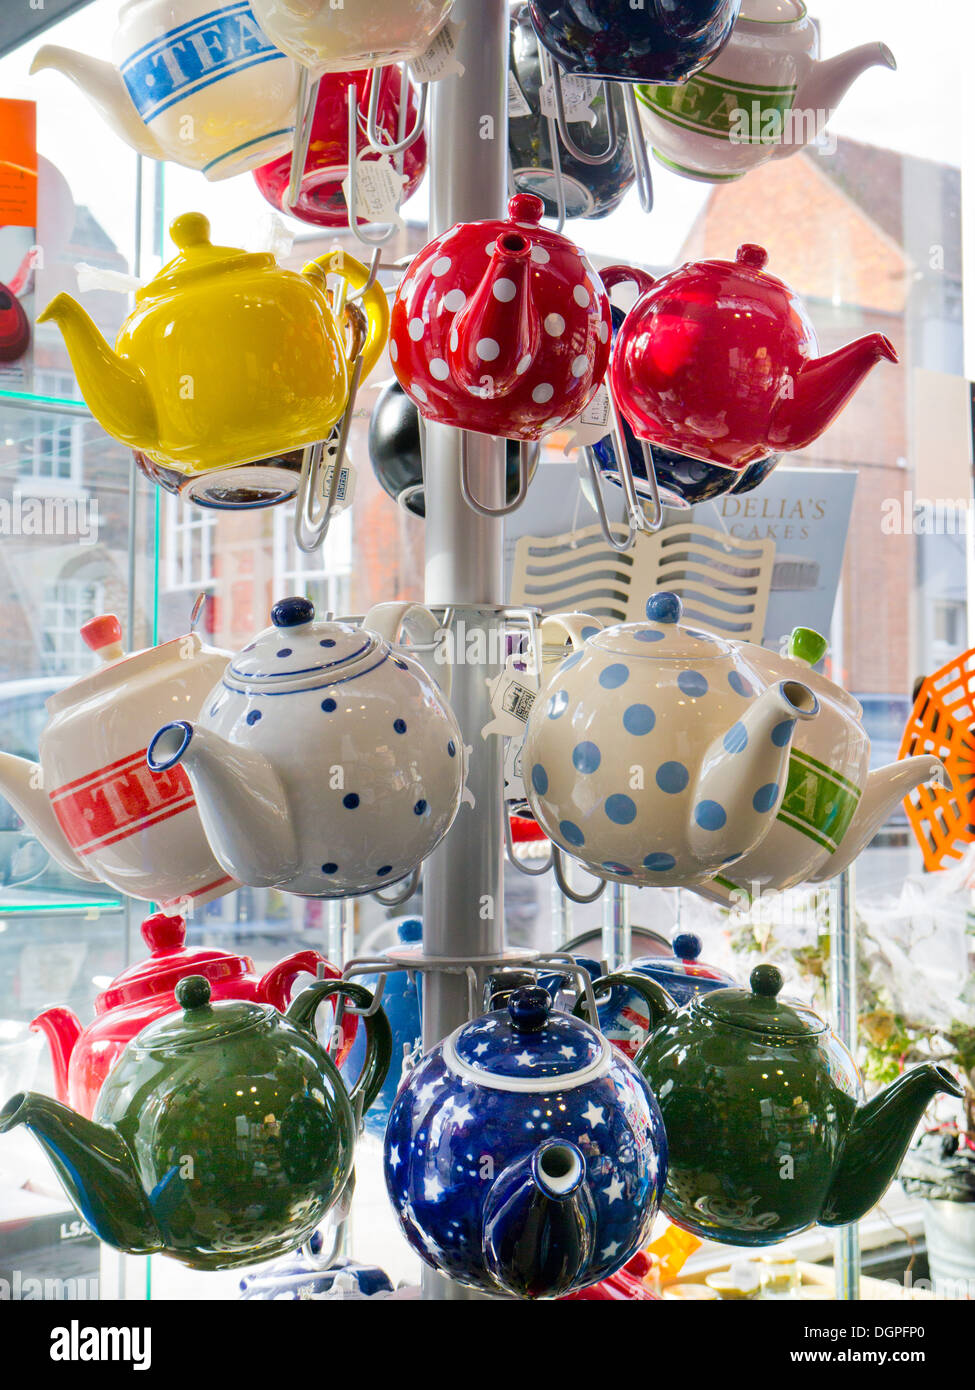 A display of teapots in a shop, Newport, Shropshire, England - Stock Image